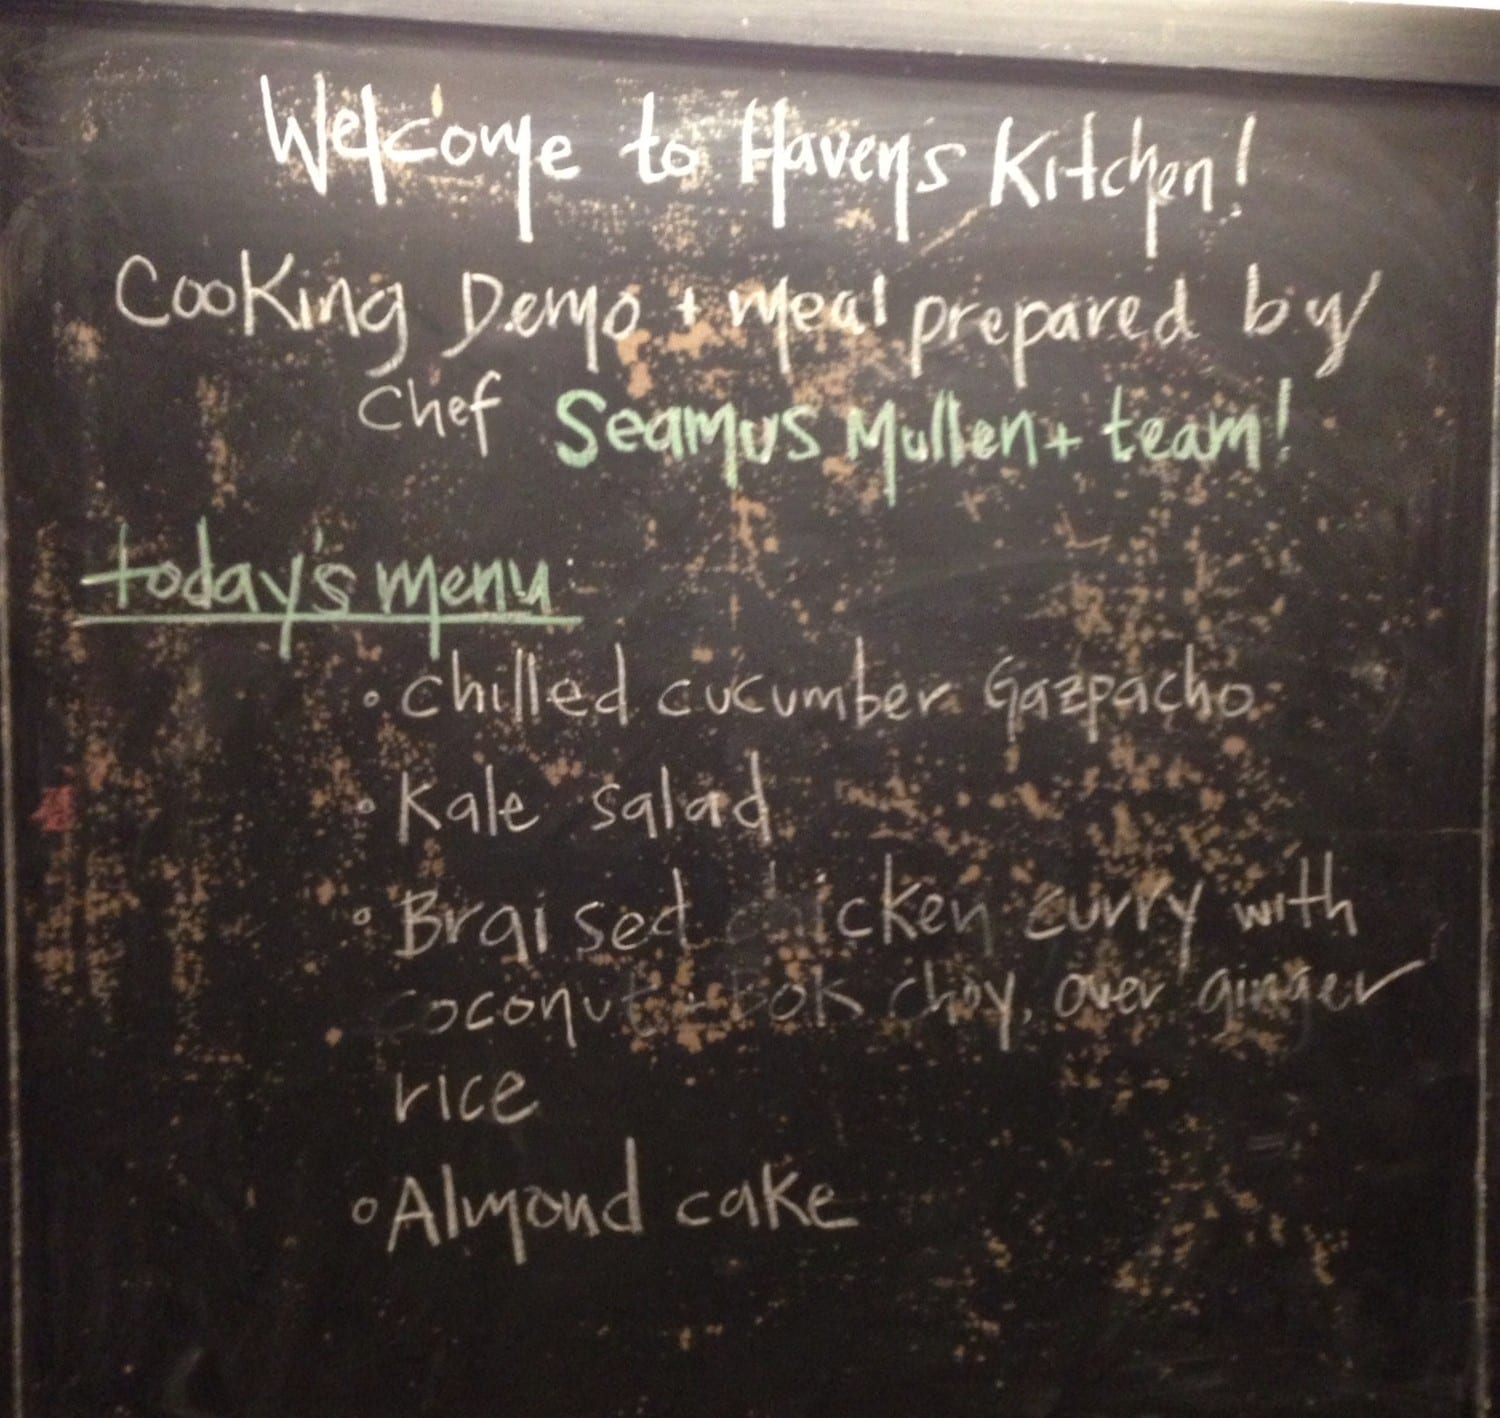 auntie stress haven's kitchen menu